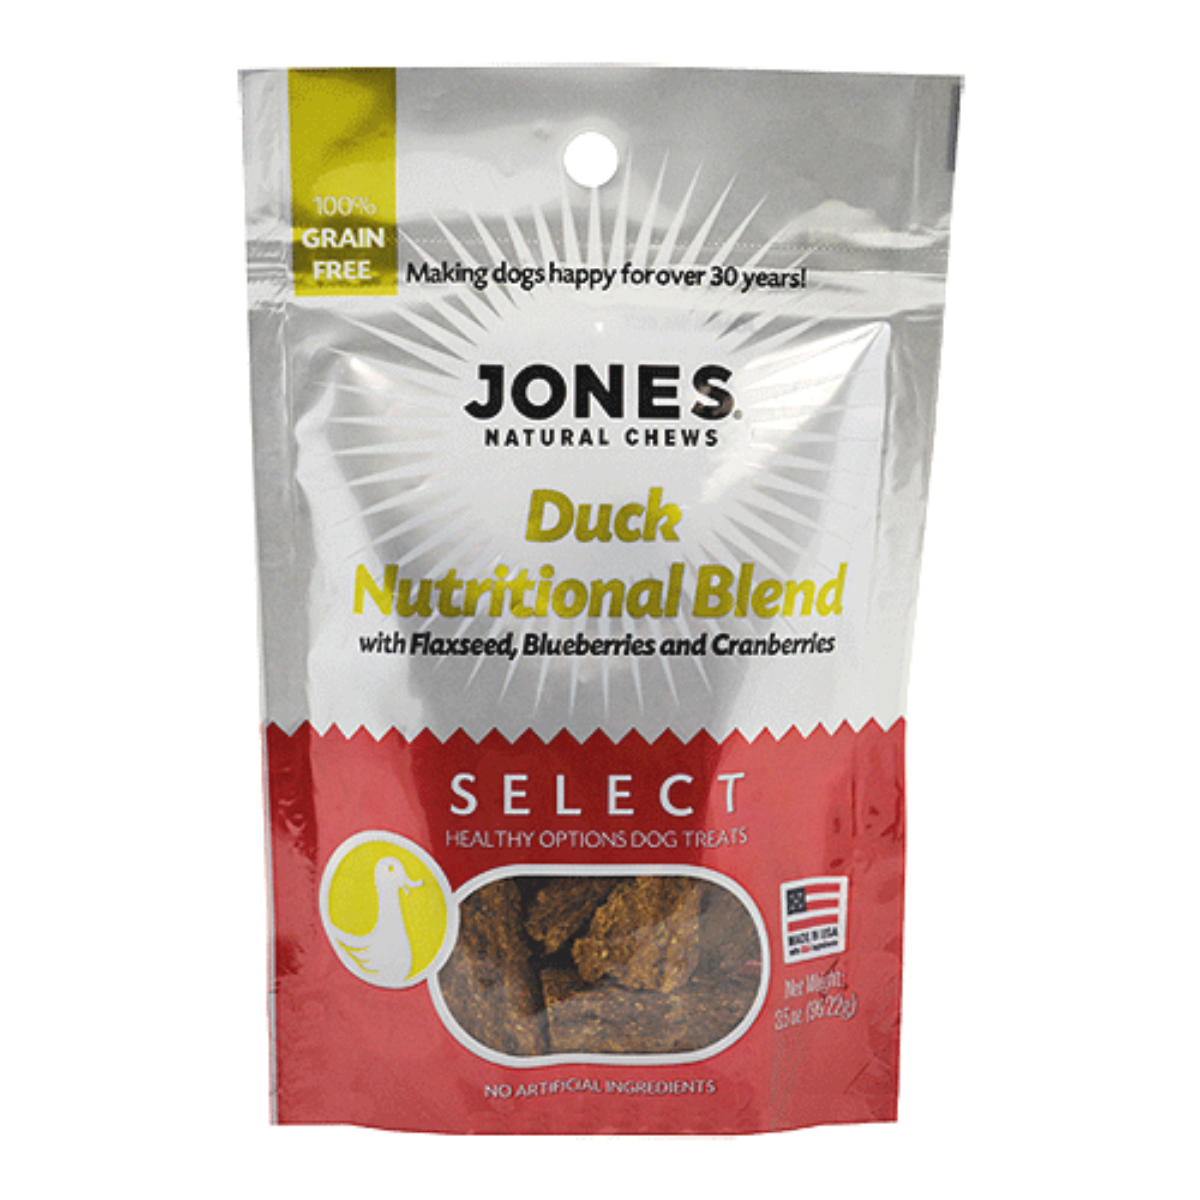 Jones Select Dog Treat - Duck Nutritional Blend